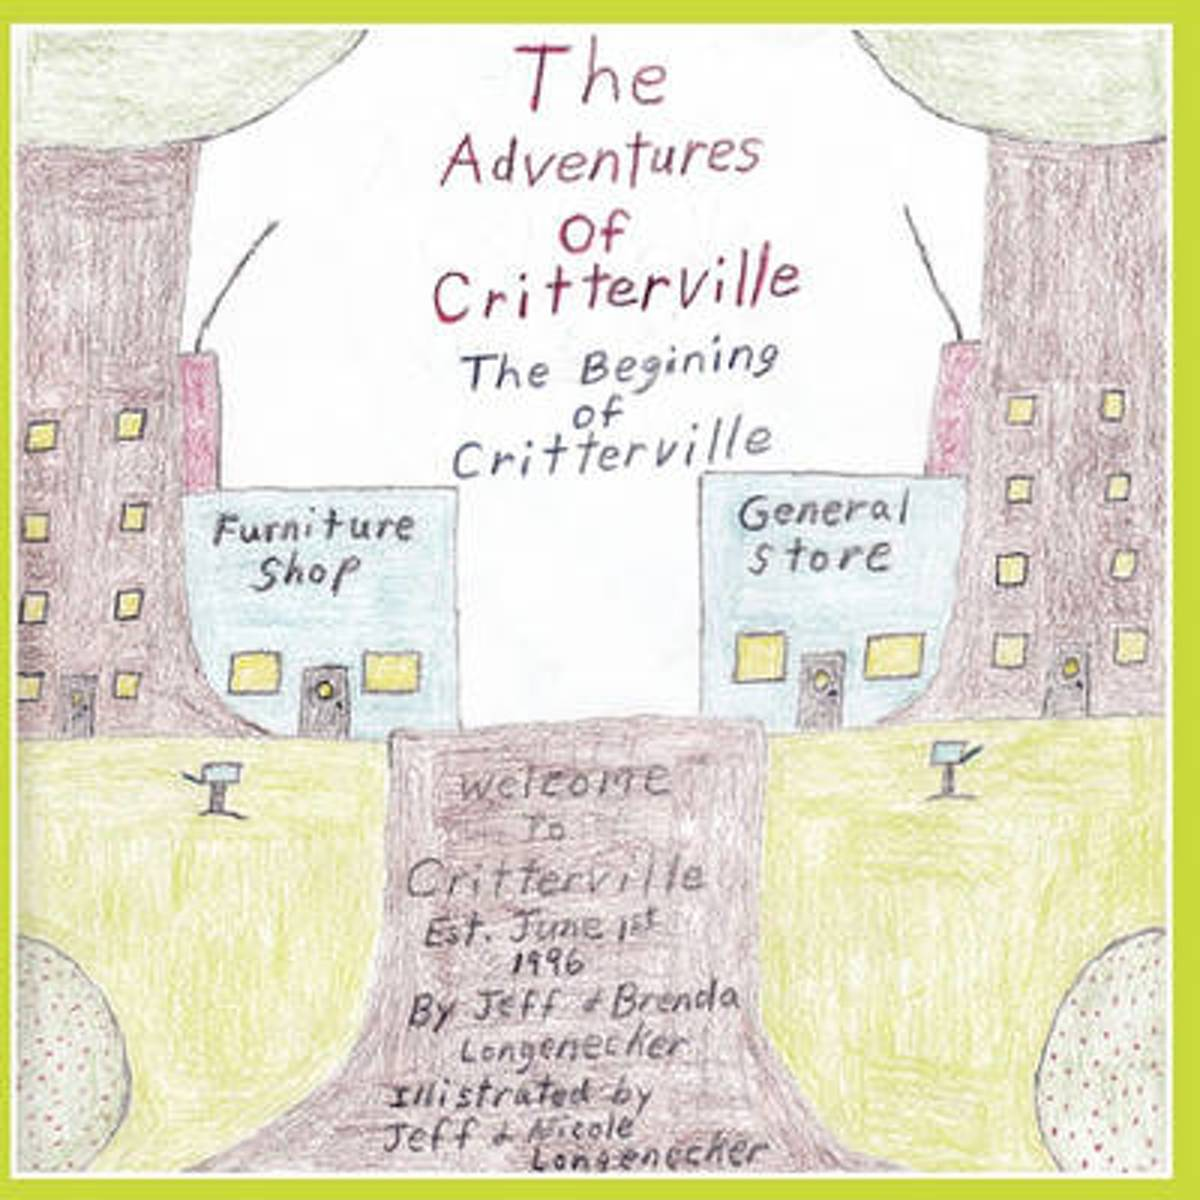 The Adventures of Critterville